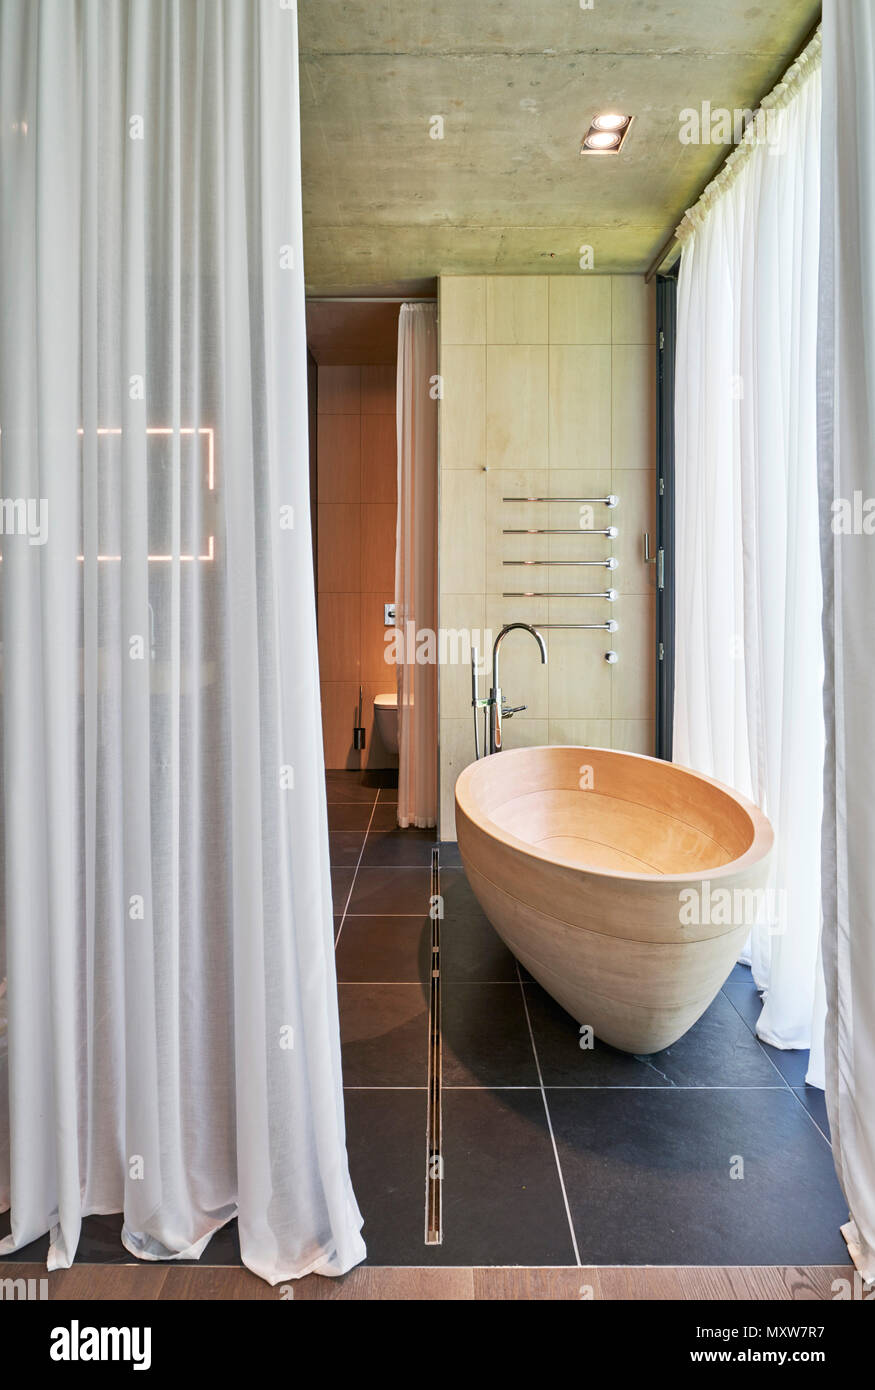 Badezimmer Villa Stock Photo